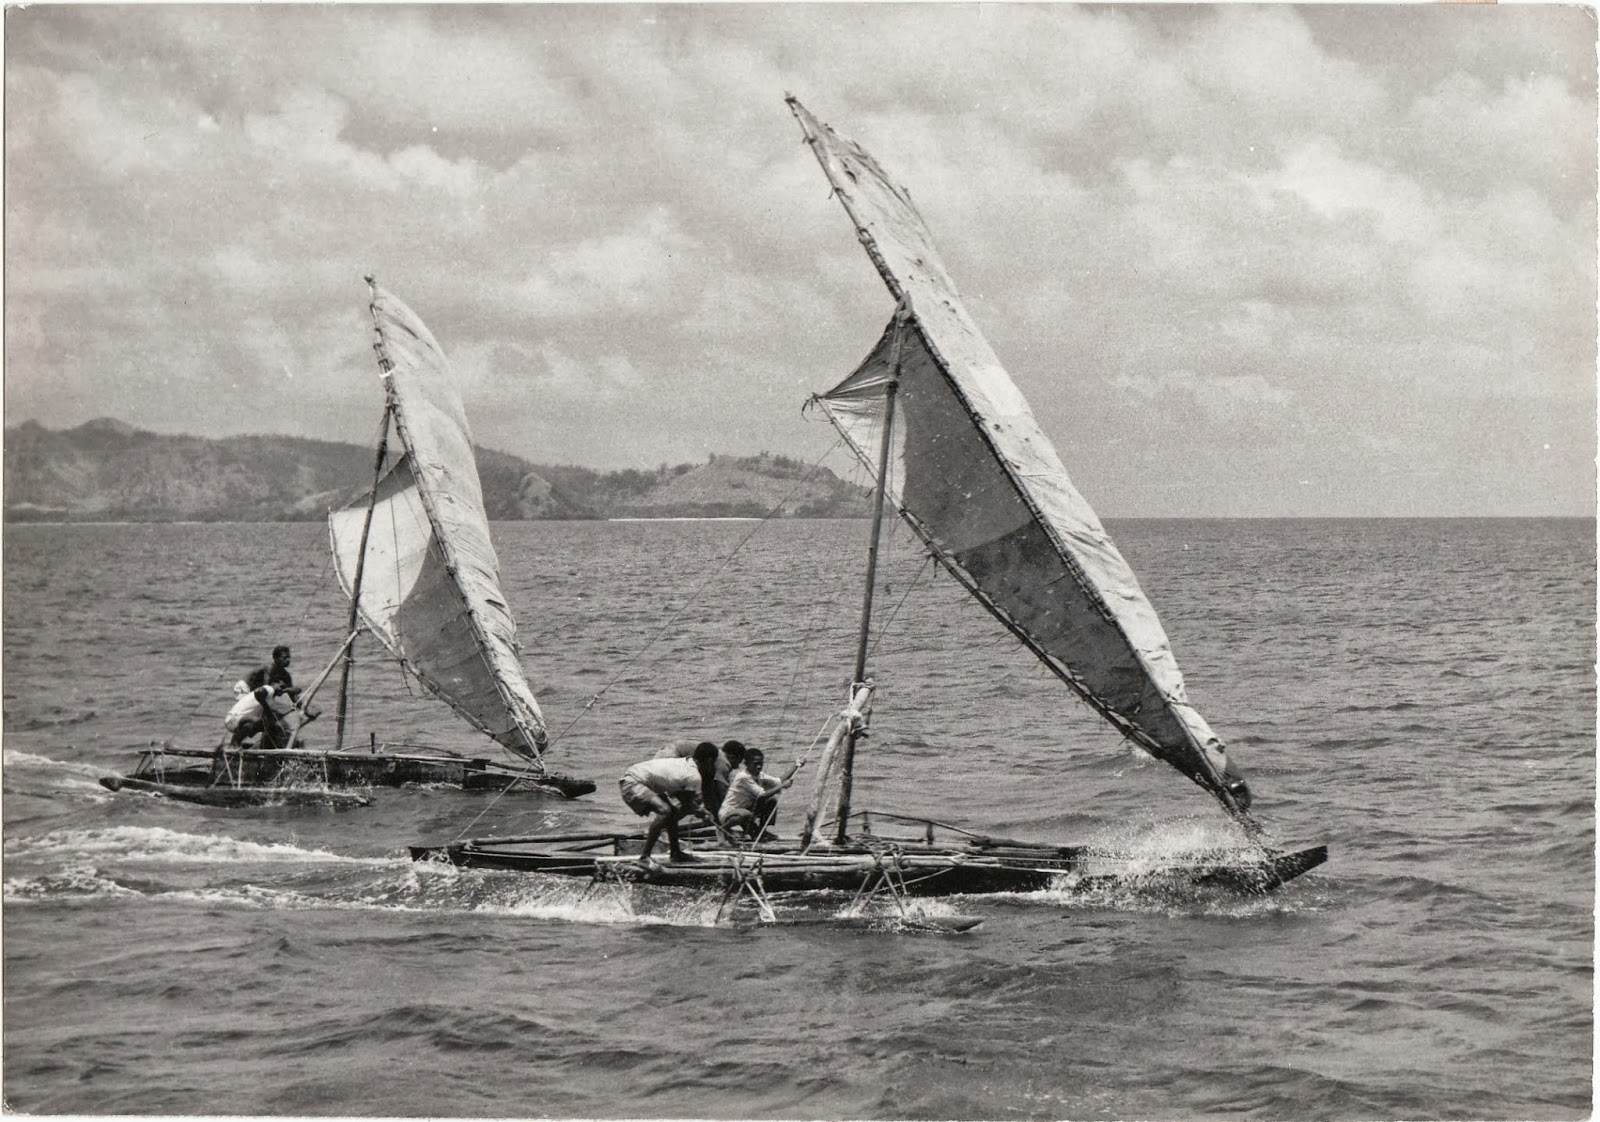 An undated photograph of Maori racing outrigger sailing canoes off the coast of New Zealand in the early twentieth century.